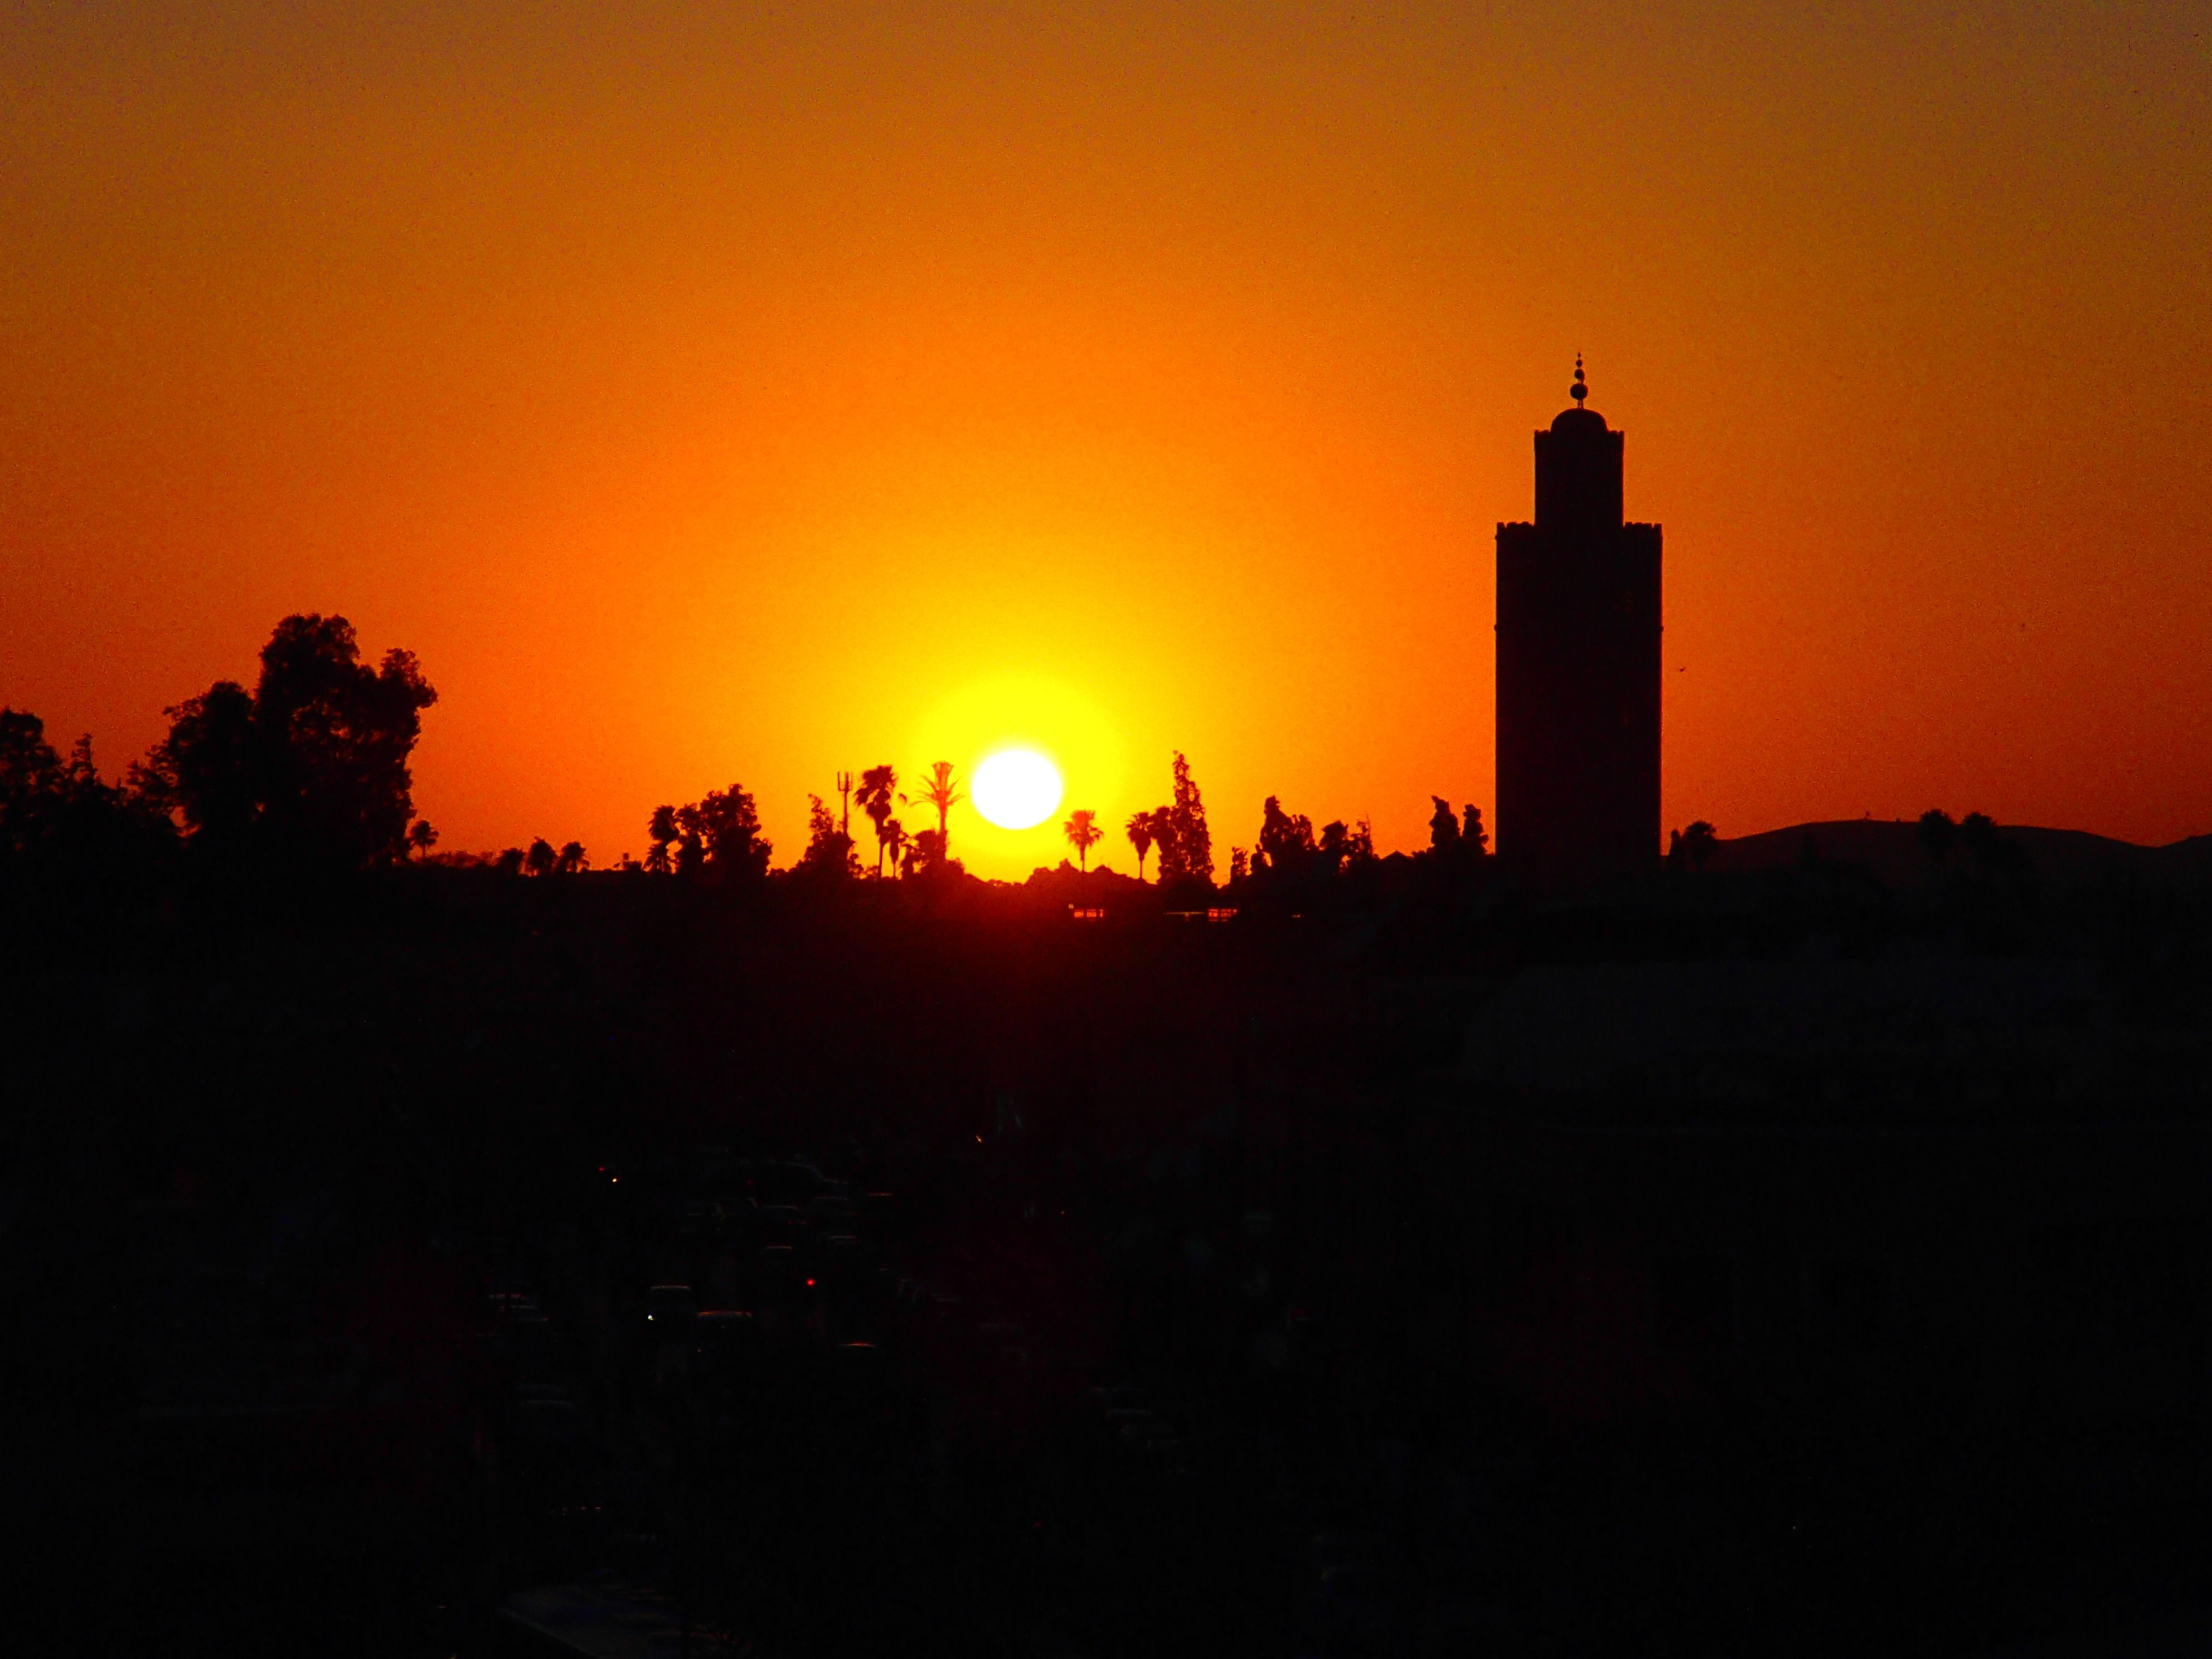 I snapped this from the balcony of the Cosy Bar in the Mellah, in Marrakech. The sun setting behind Koutoubia Mosque like a fire in the sky. Copyright Monique Drinkwater of www.popupsouk.com